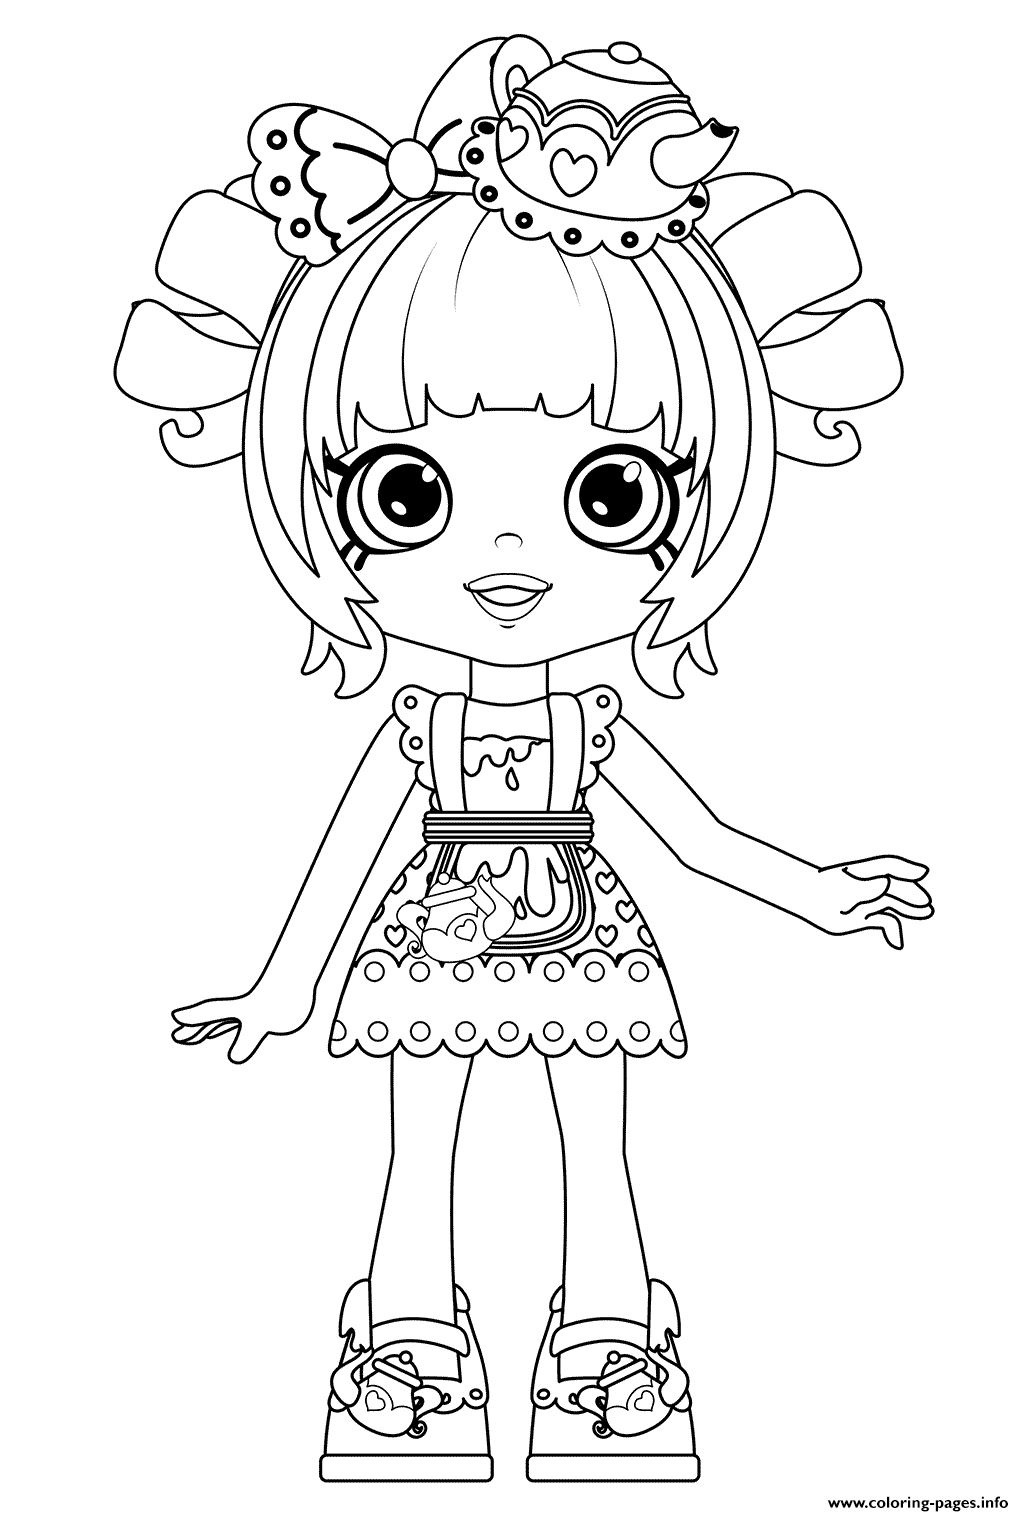 Funny Tippi Teapot Coloring Pages Printable